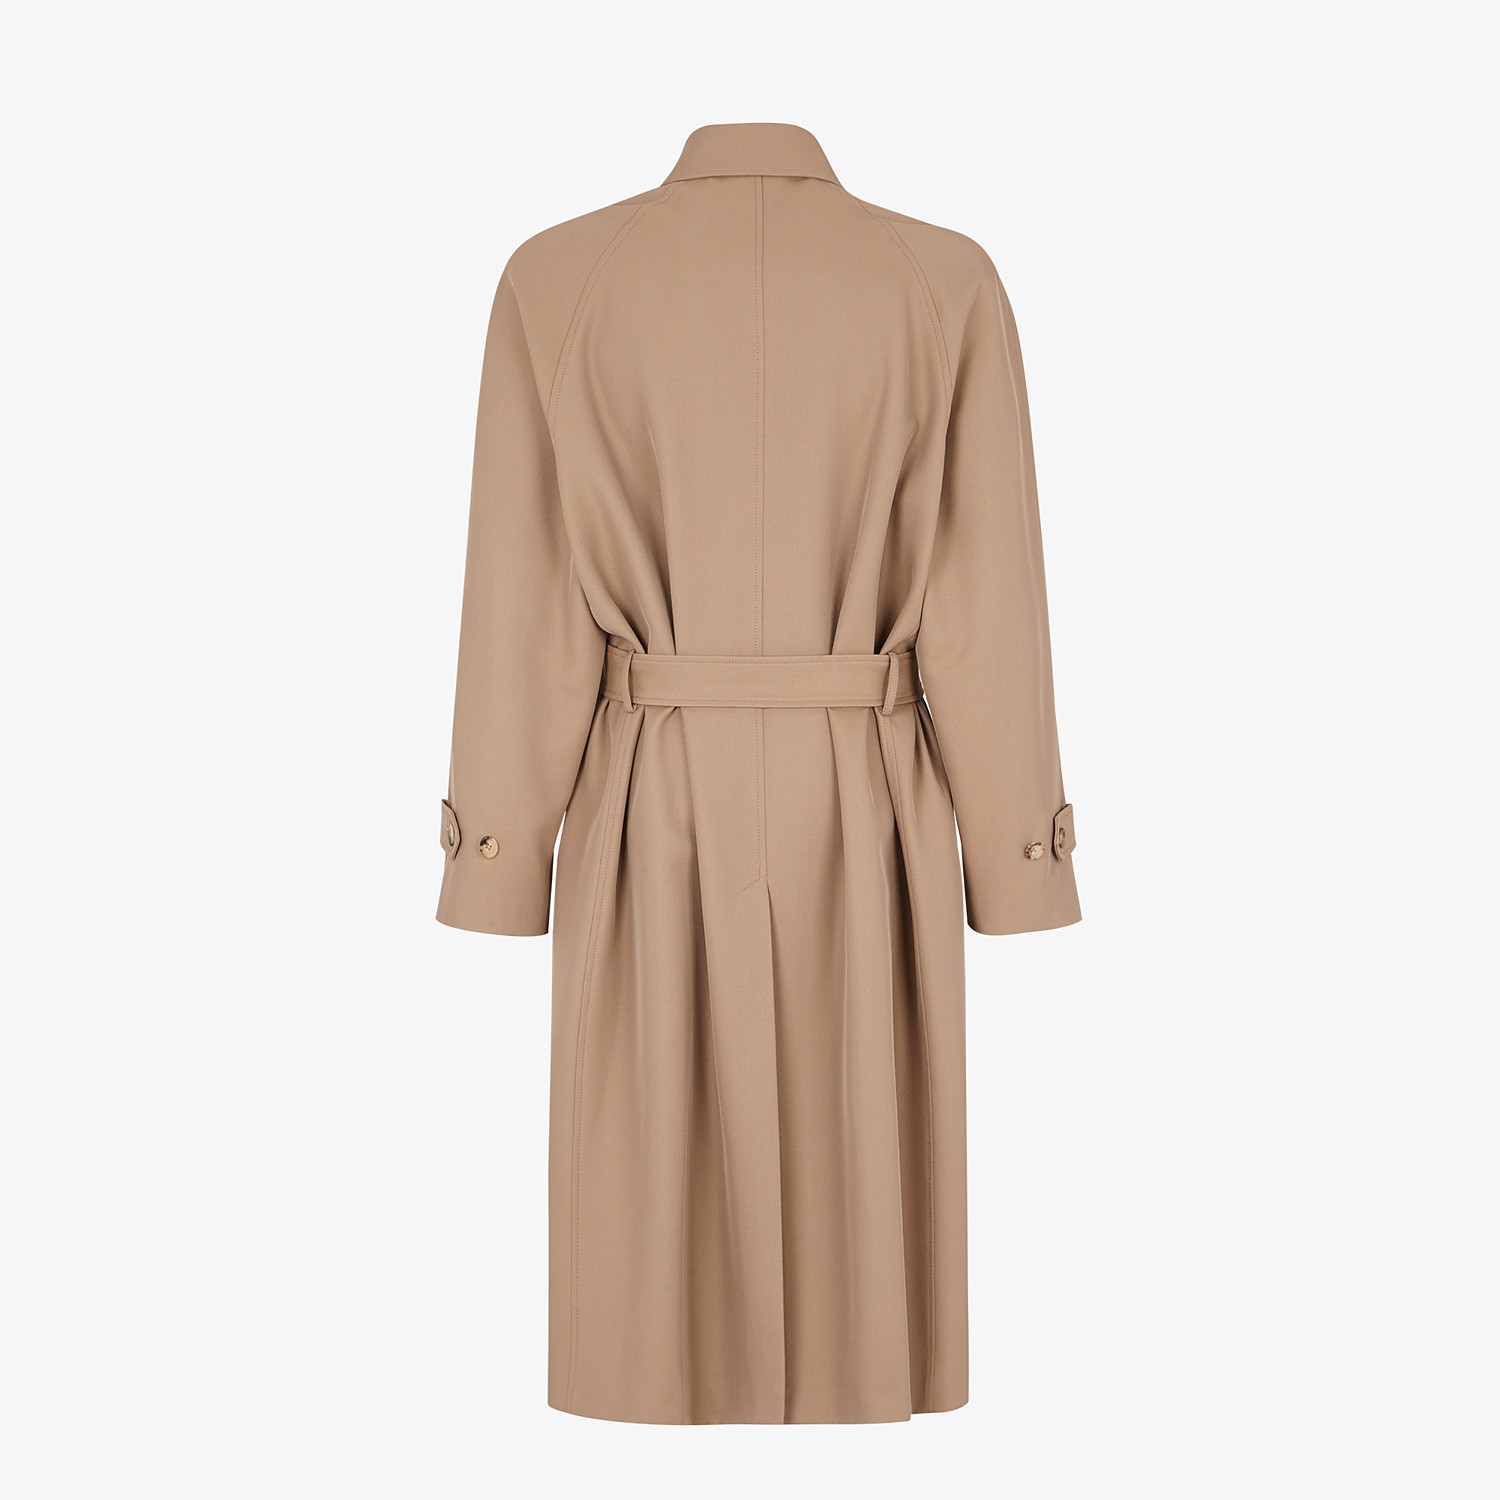 FENDI TRENCH COAT - Beige wool trench coat - view 2 detail